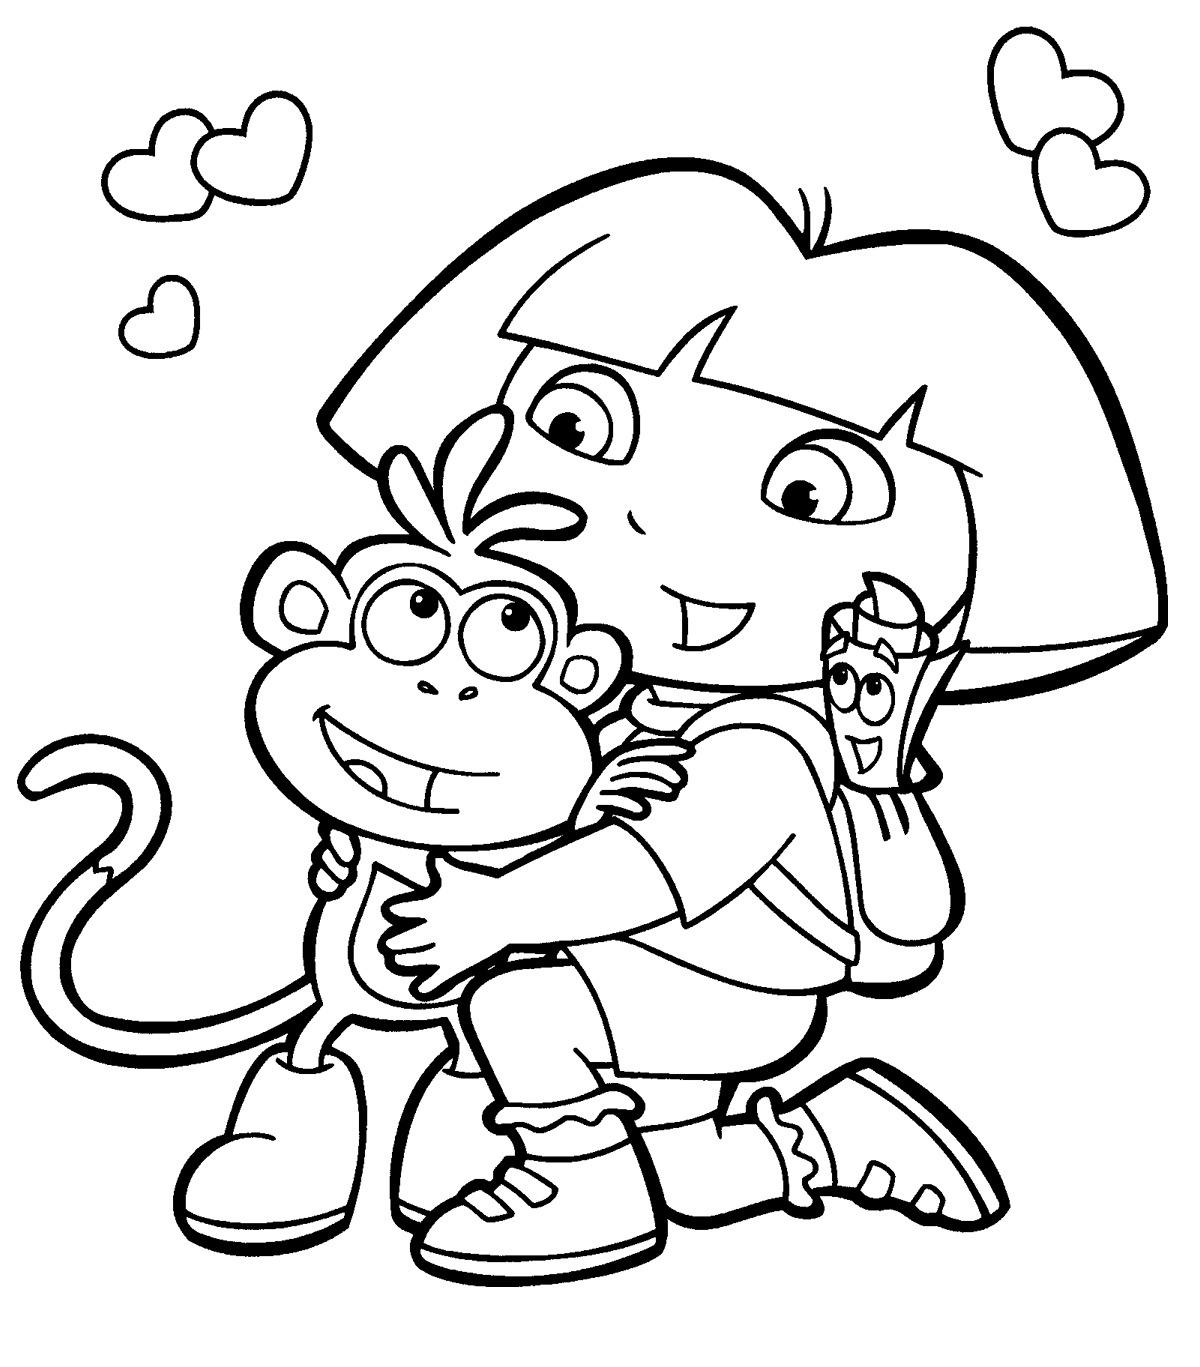 dora free coloring pages dora coloring pages games at getdrawings free download free pages coloring dora